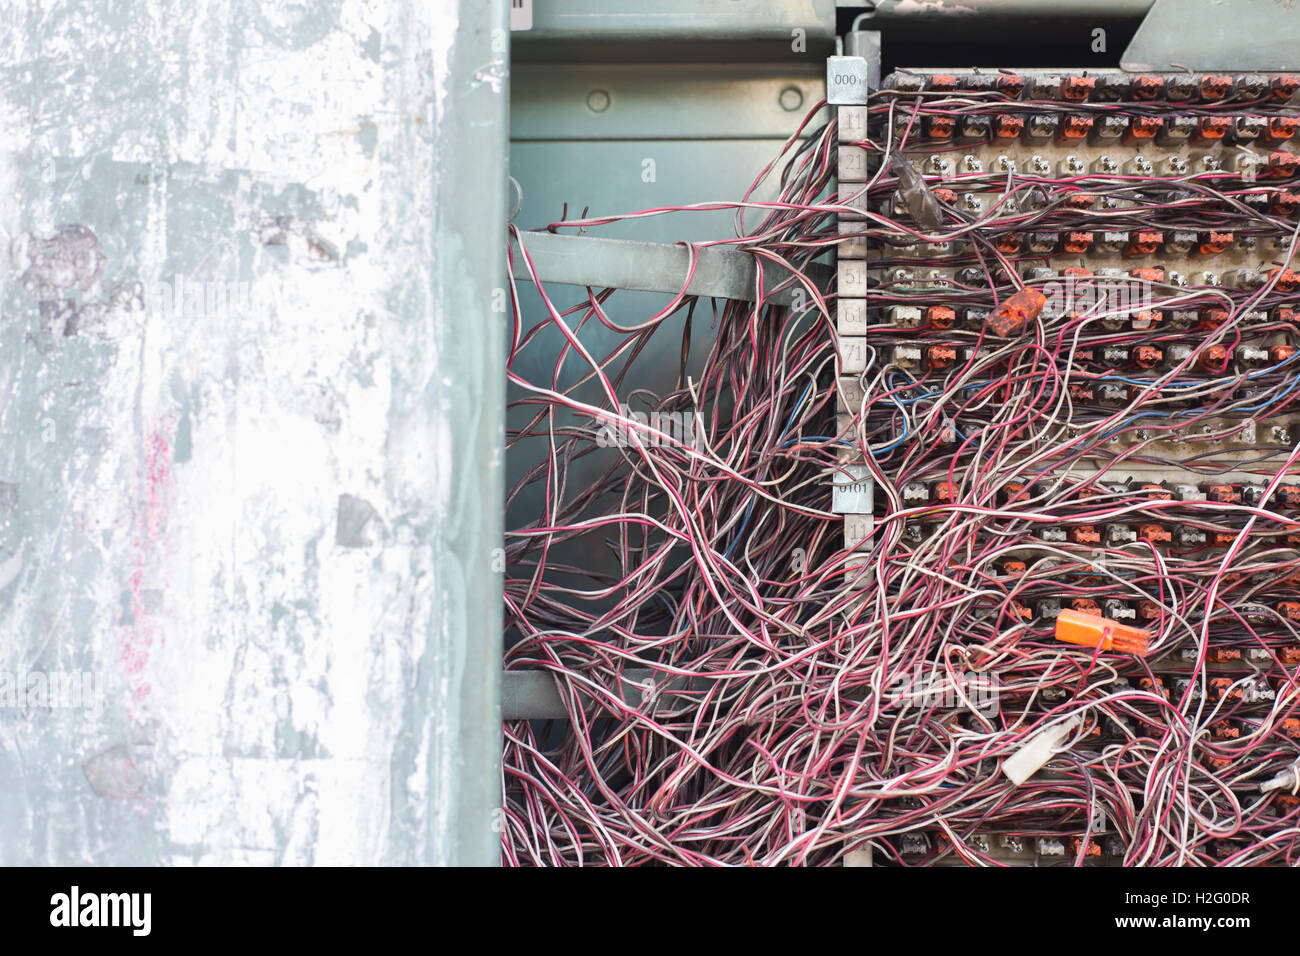 Awesome Switchboard Panel With Messy Cables Connections The Pabx Stock Photo Wiring 101 Mecadwellnesstrialsorg